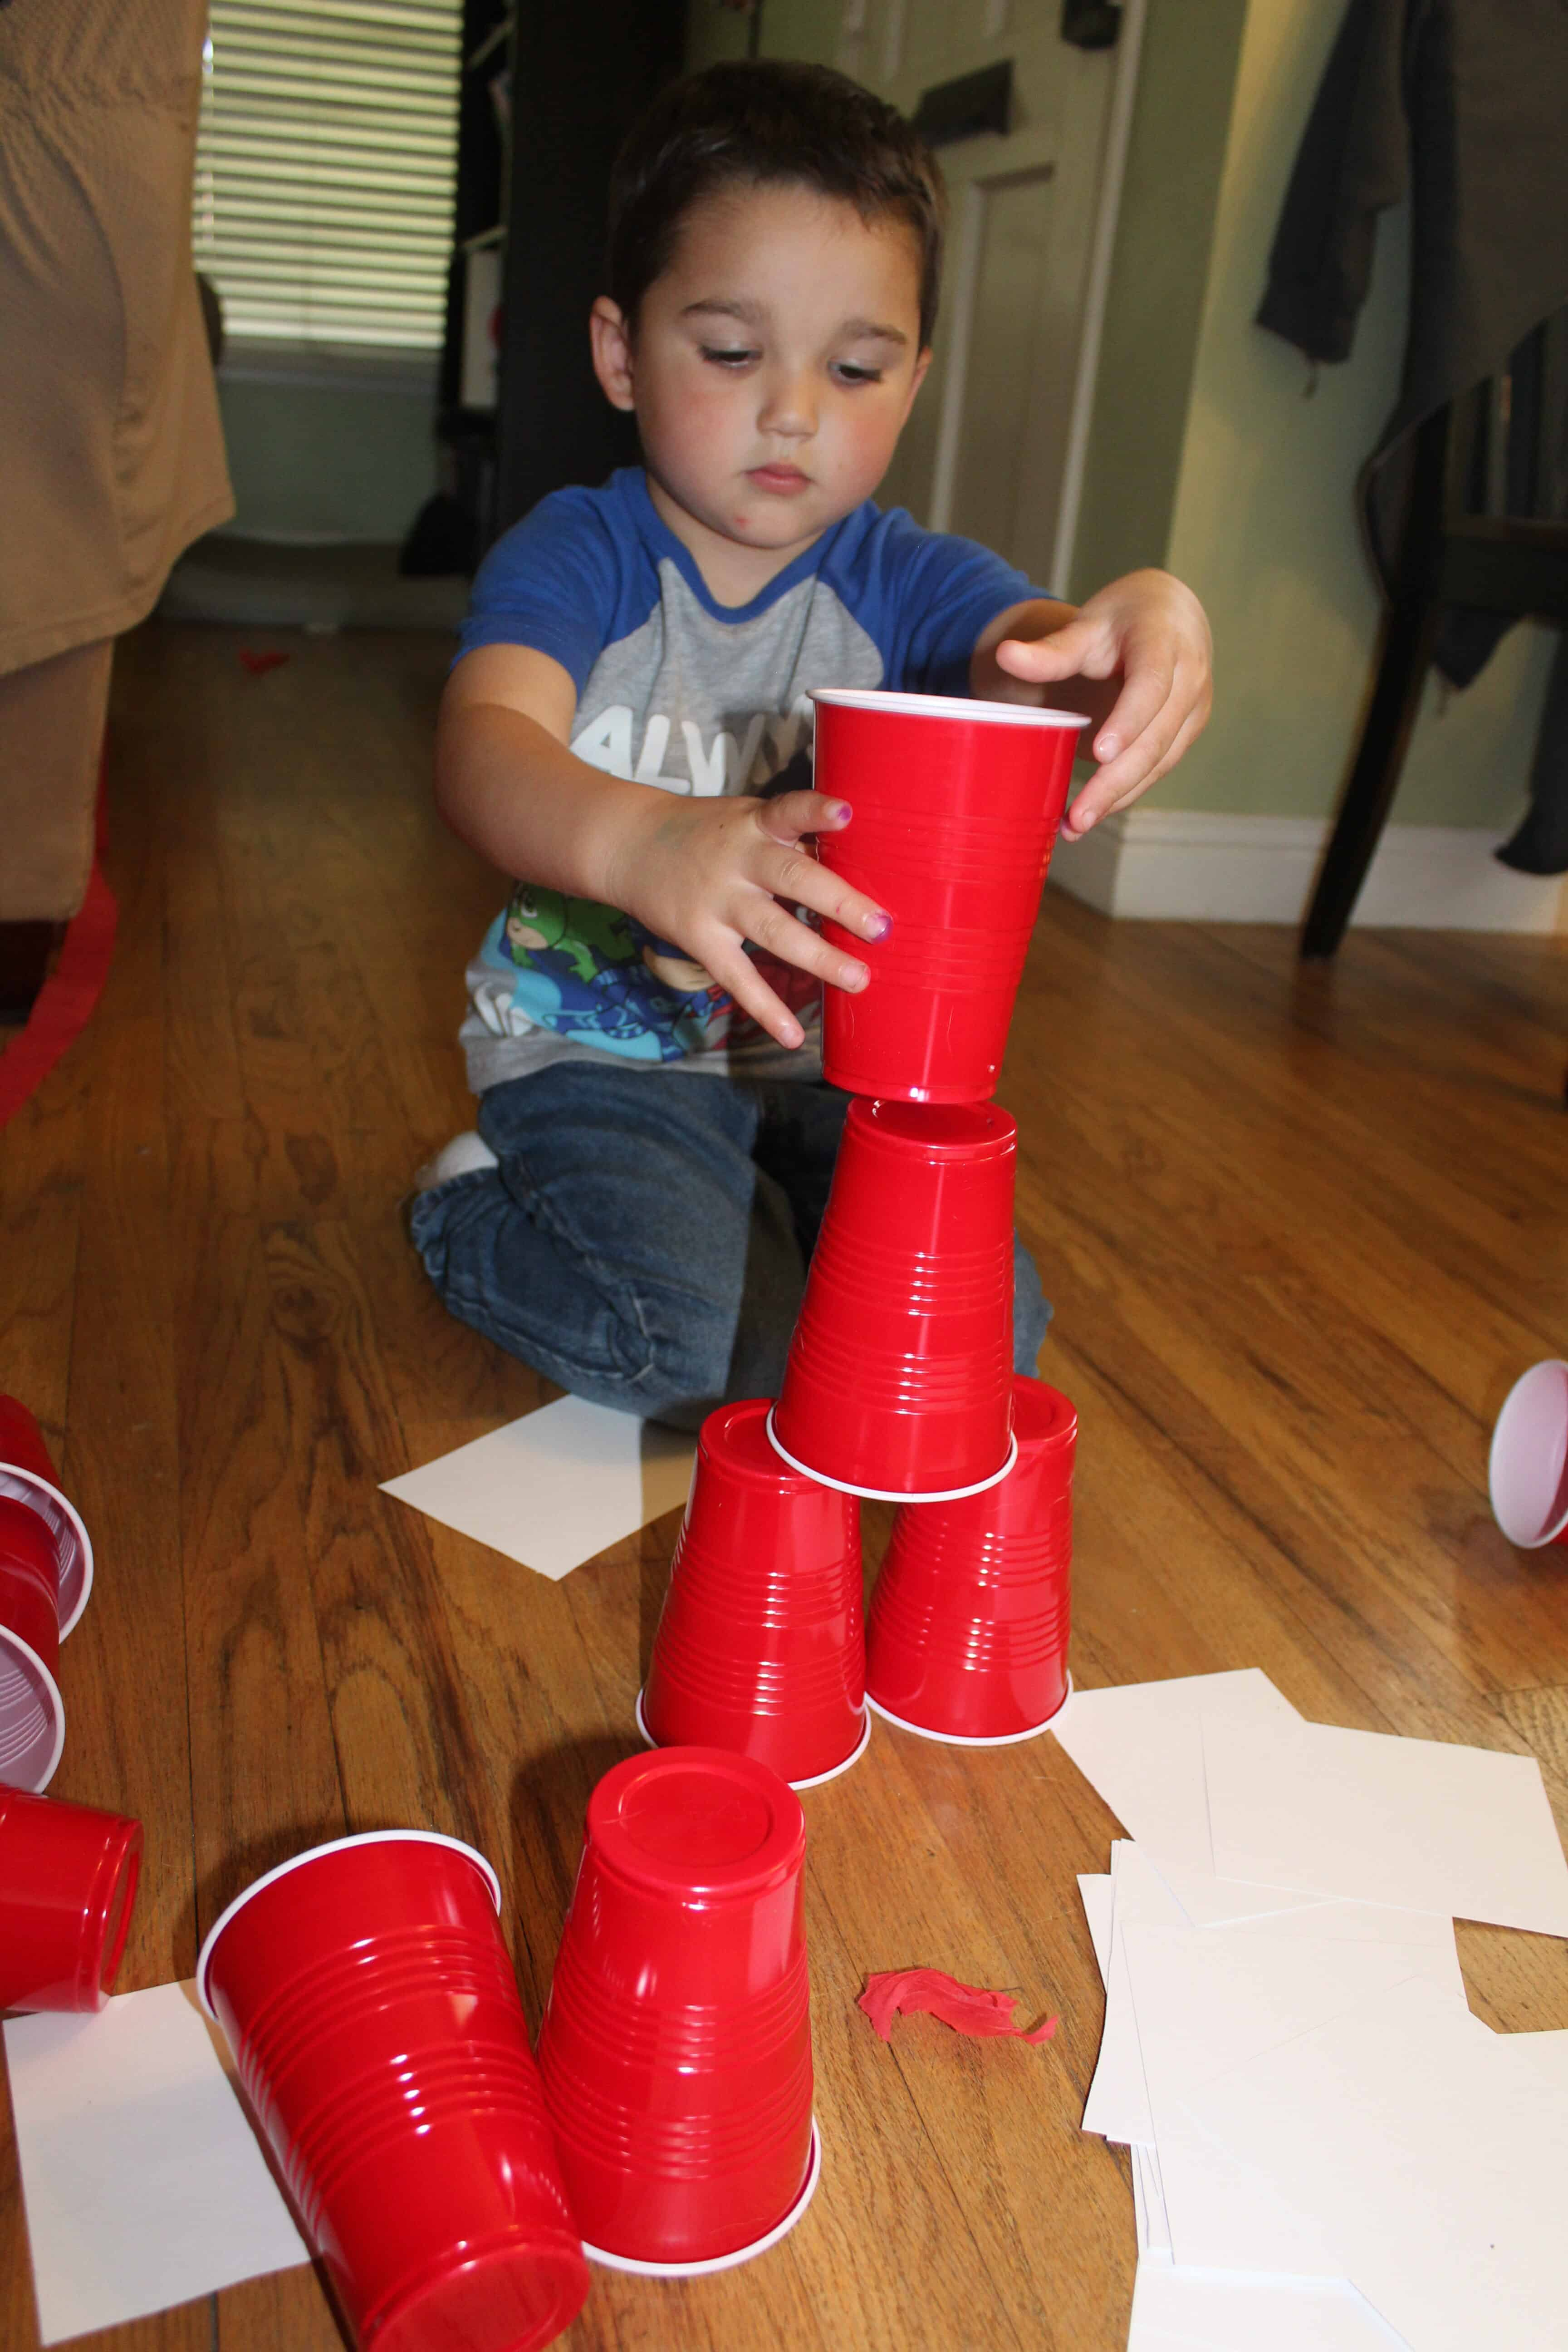 toddler building a tower of red solo cups